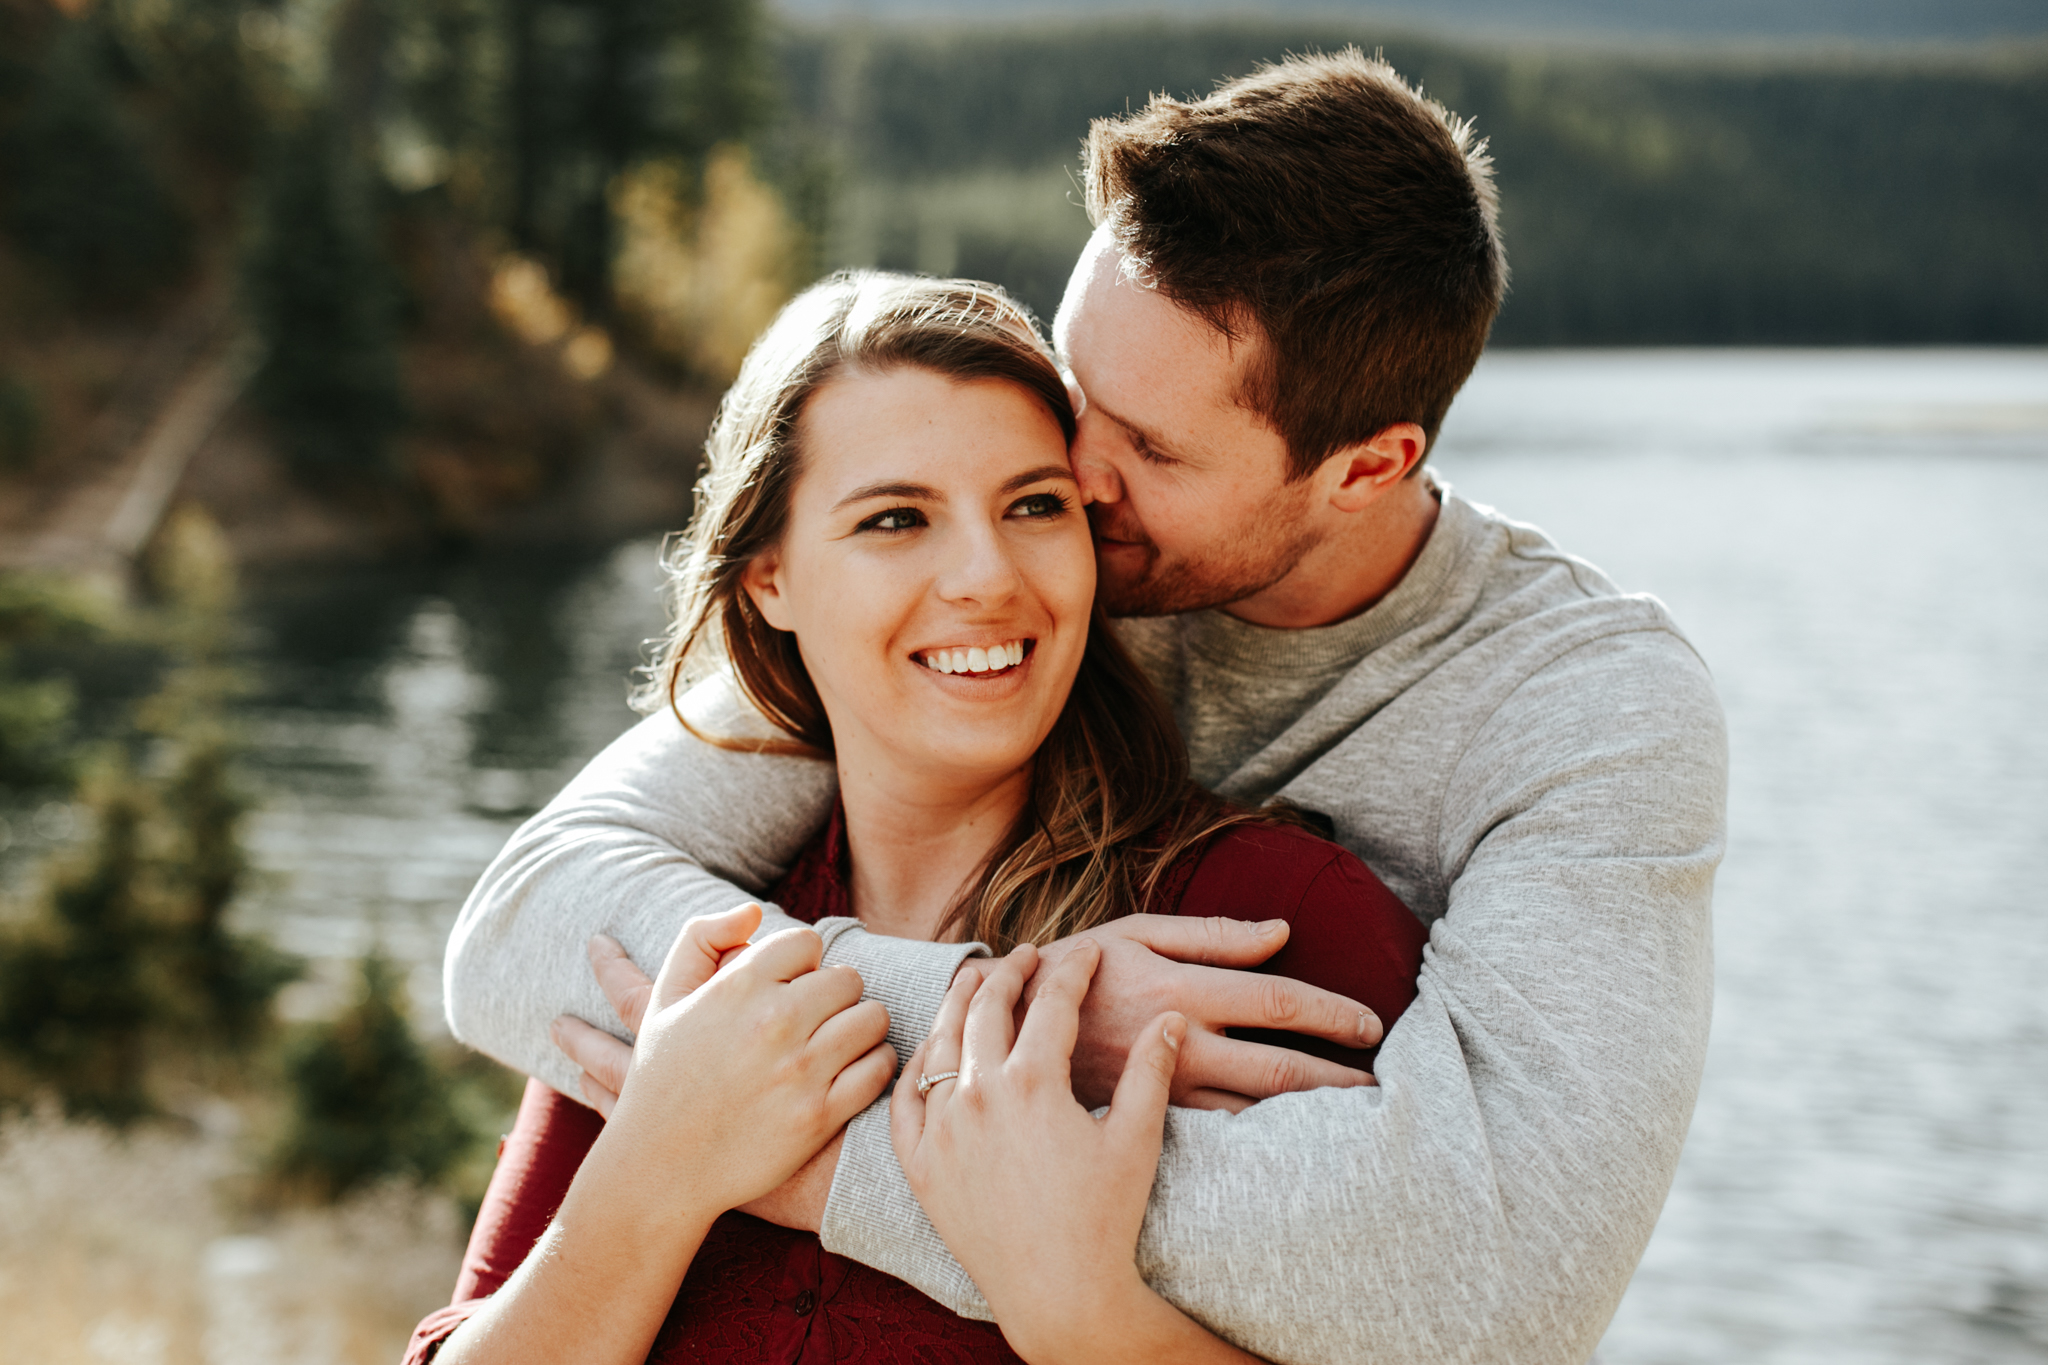 lethbridge-photographer-love-and-be-loved-photography-crowsnest-pass-engagement-andi-philip-picture-image-photo--15.jpg